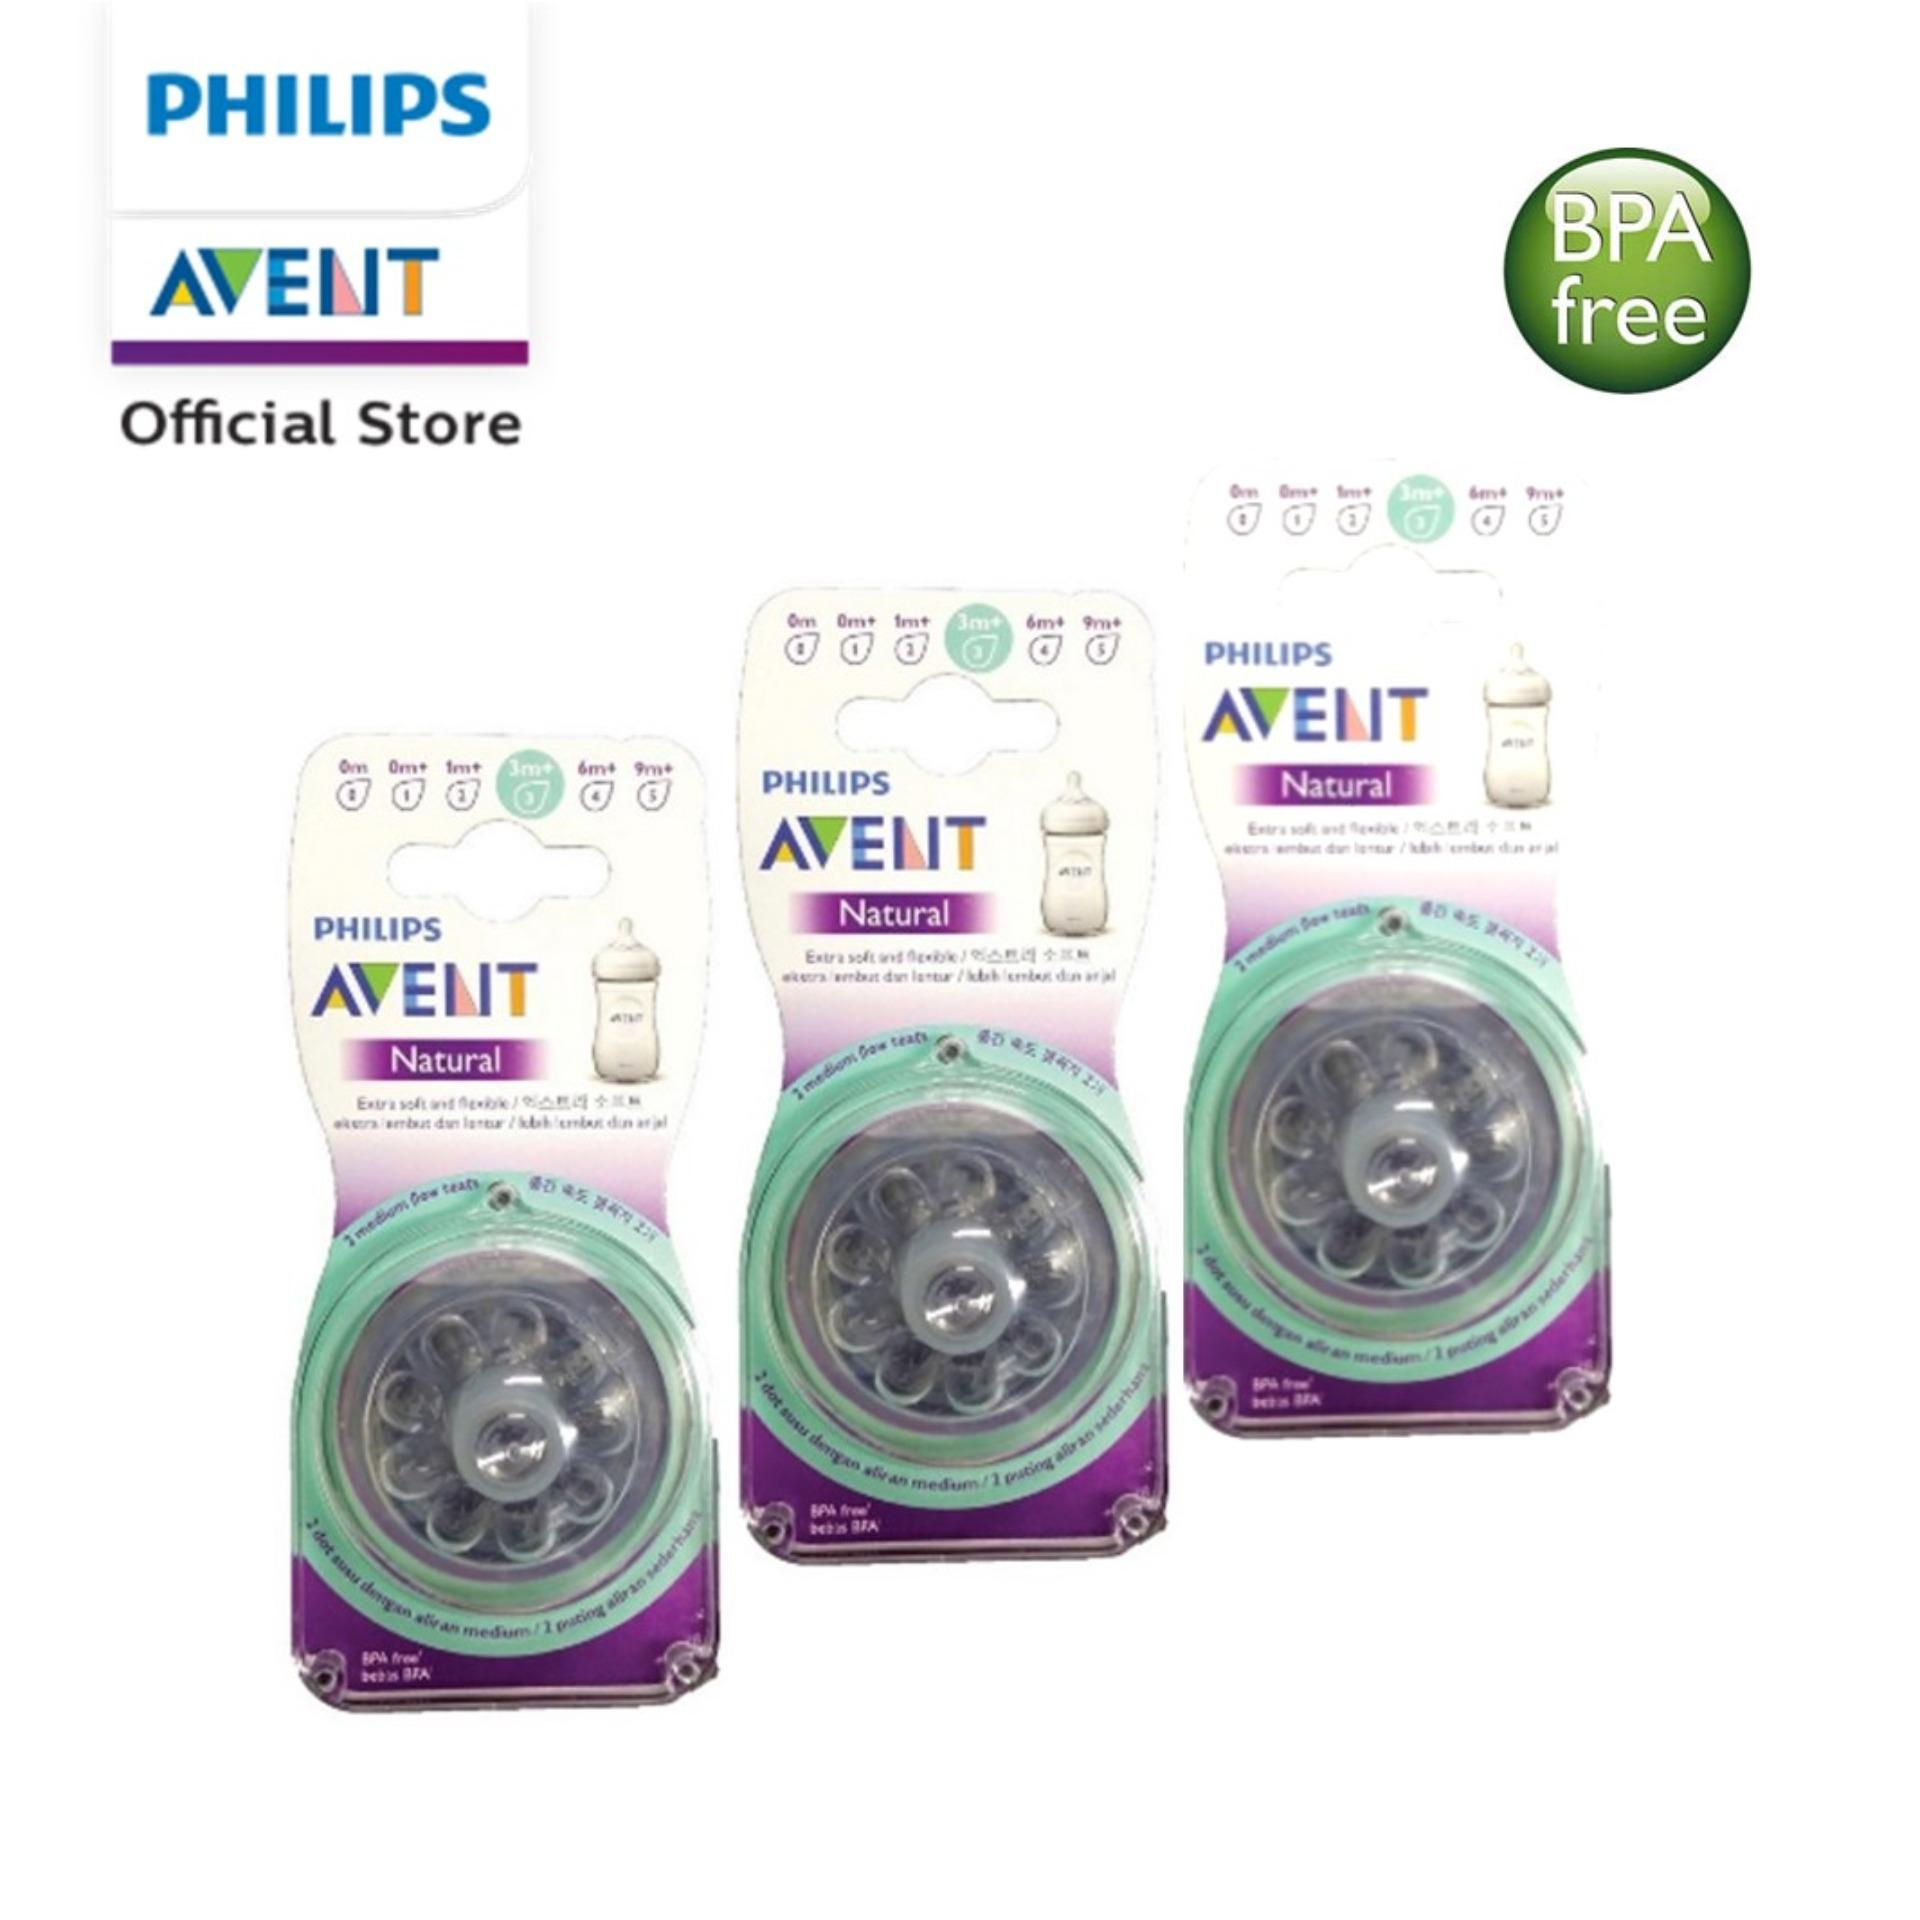 Philips Avent natural teats 3H medium flow 3m+ 2pcs/pack X 3 pack